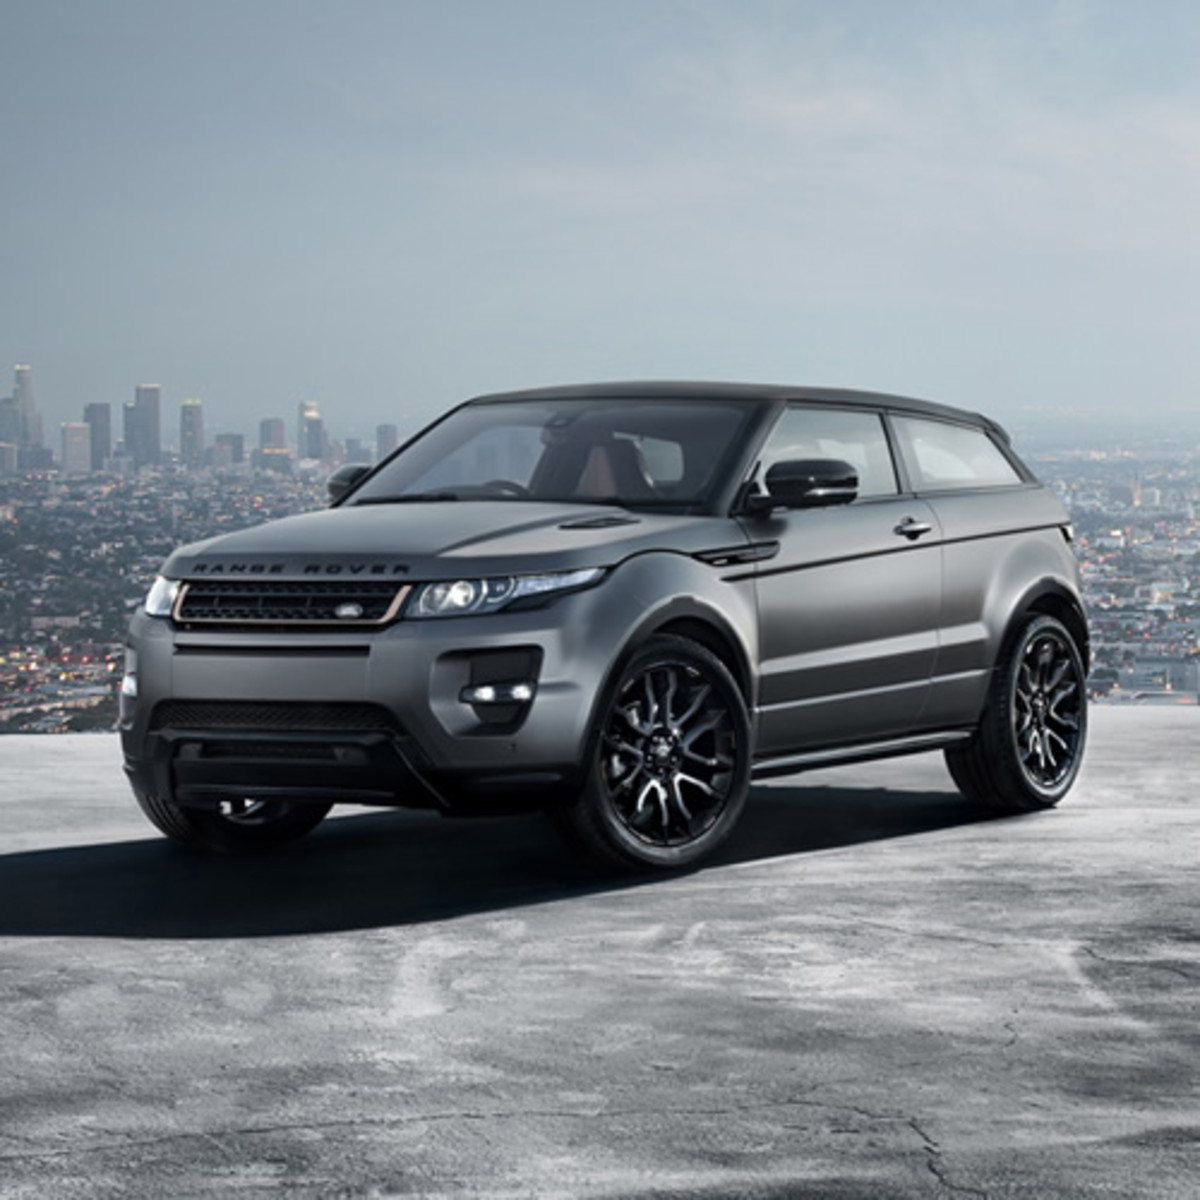 range rover evoque special edition by victoria beckham acquire. Black Bedroom Furniture Sets. Home Design Ideas